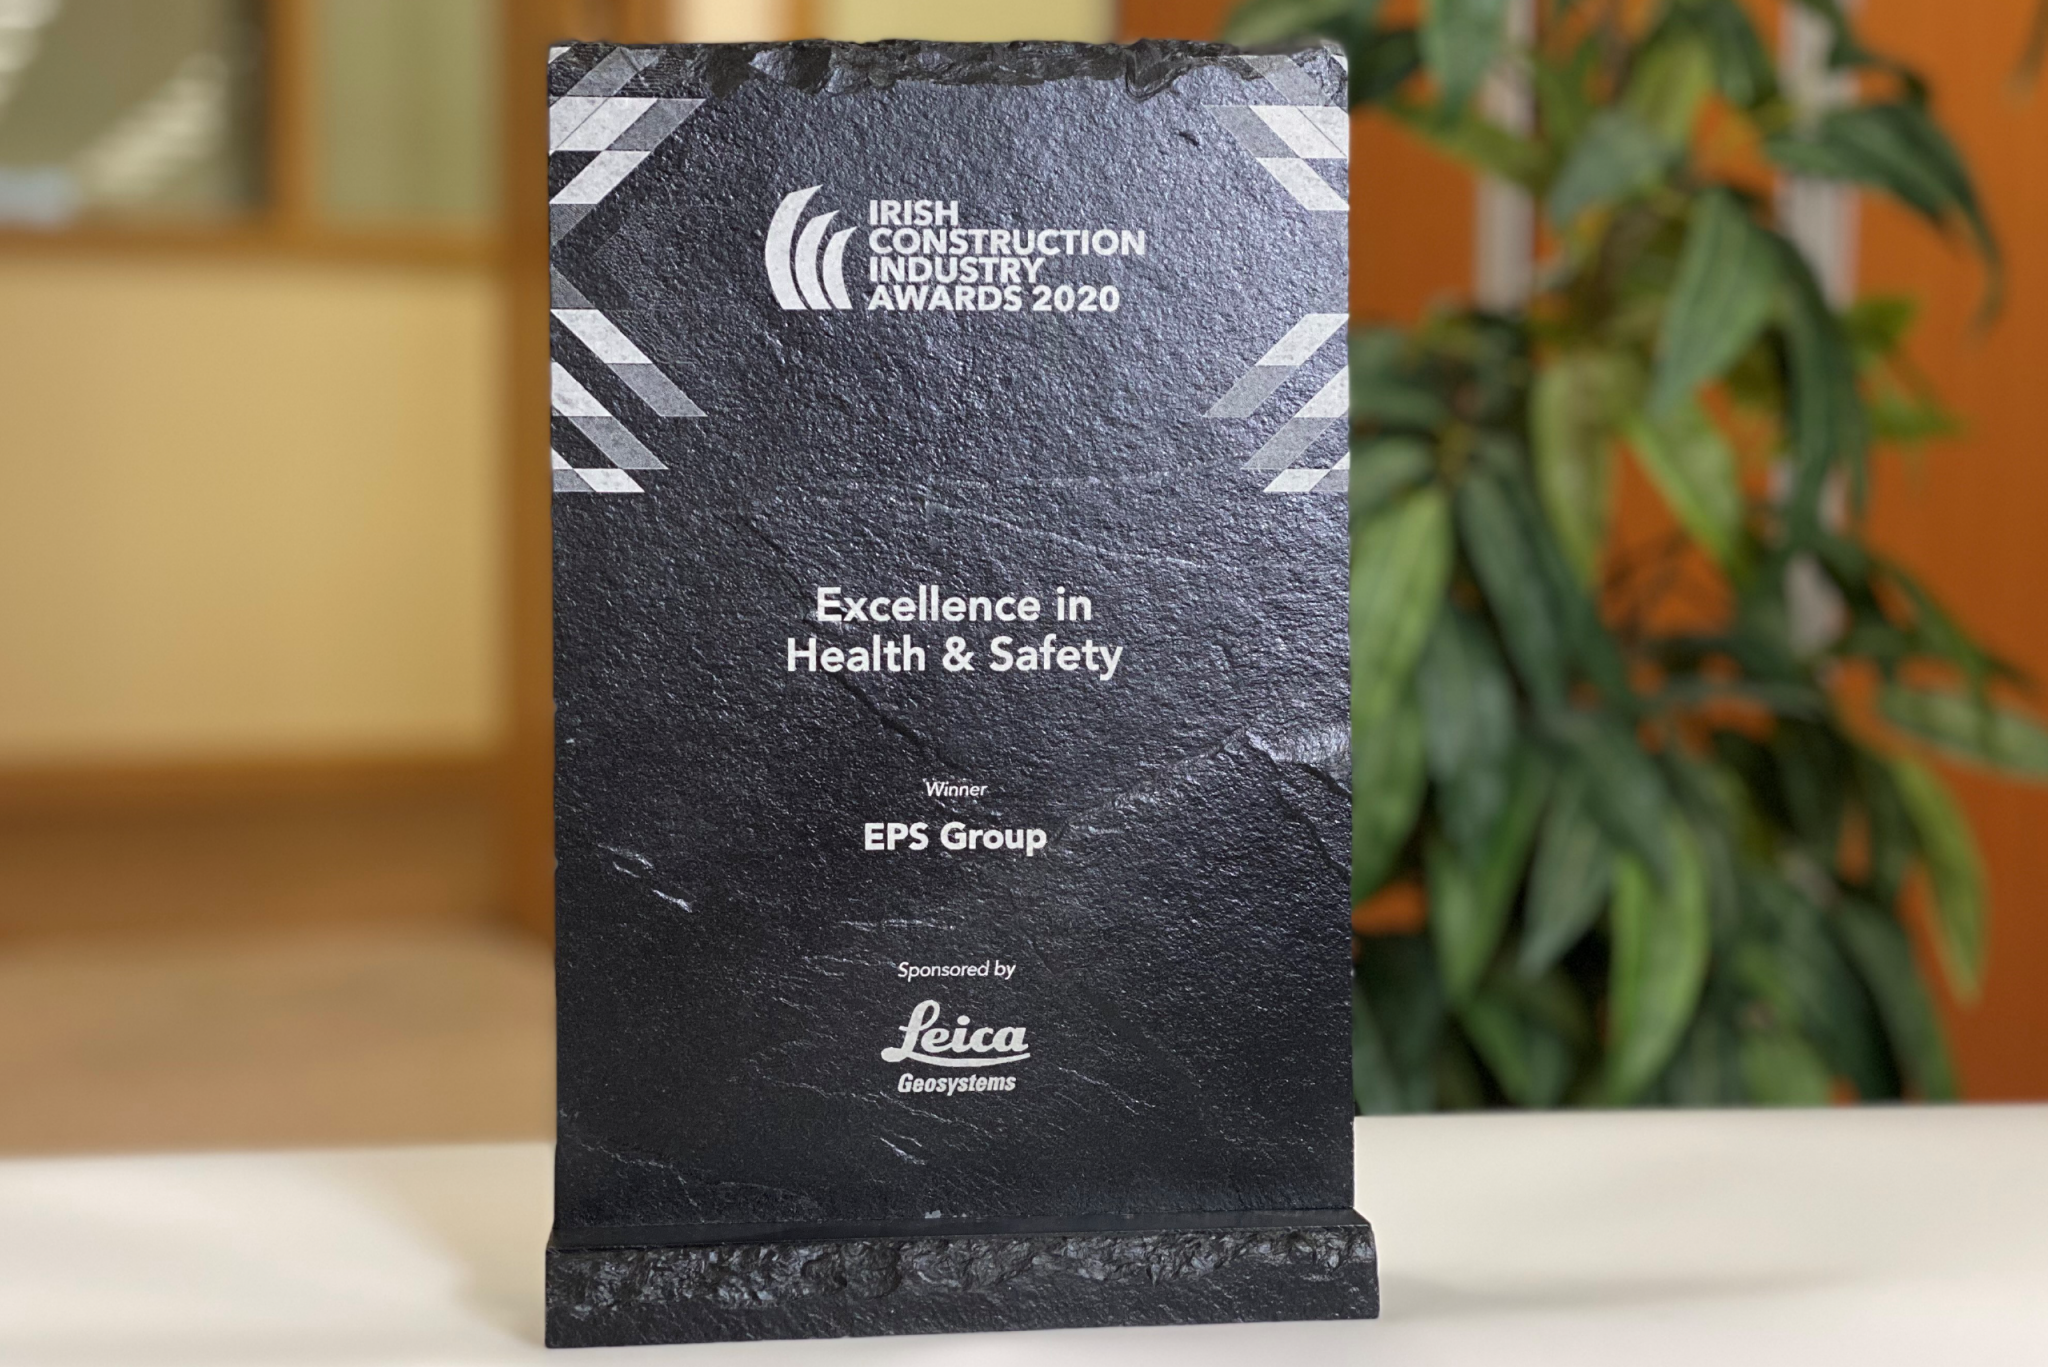 EPS Wins Excellence in H&S Award